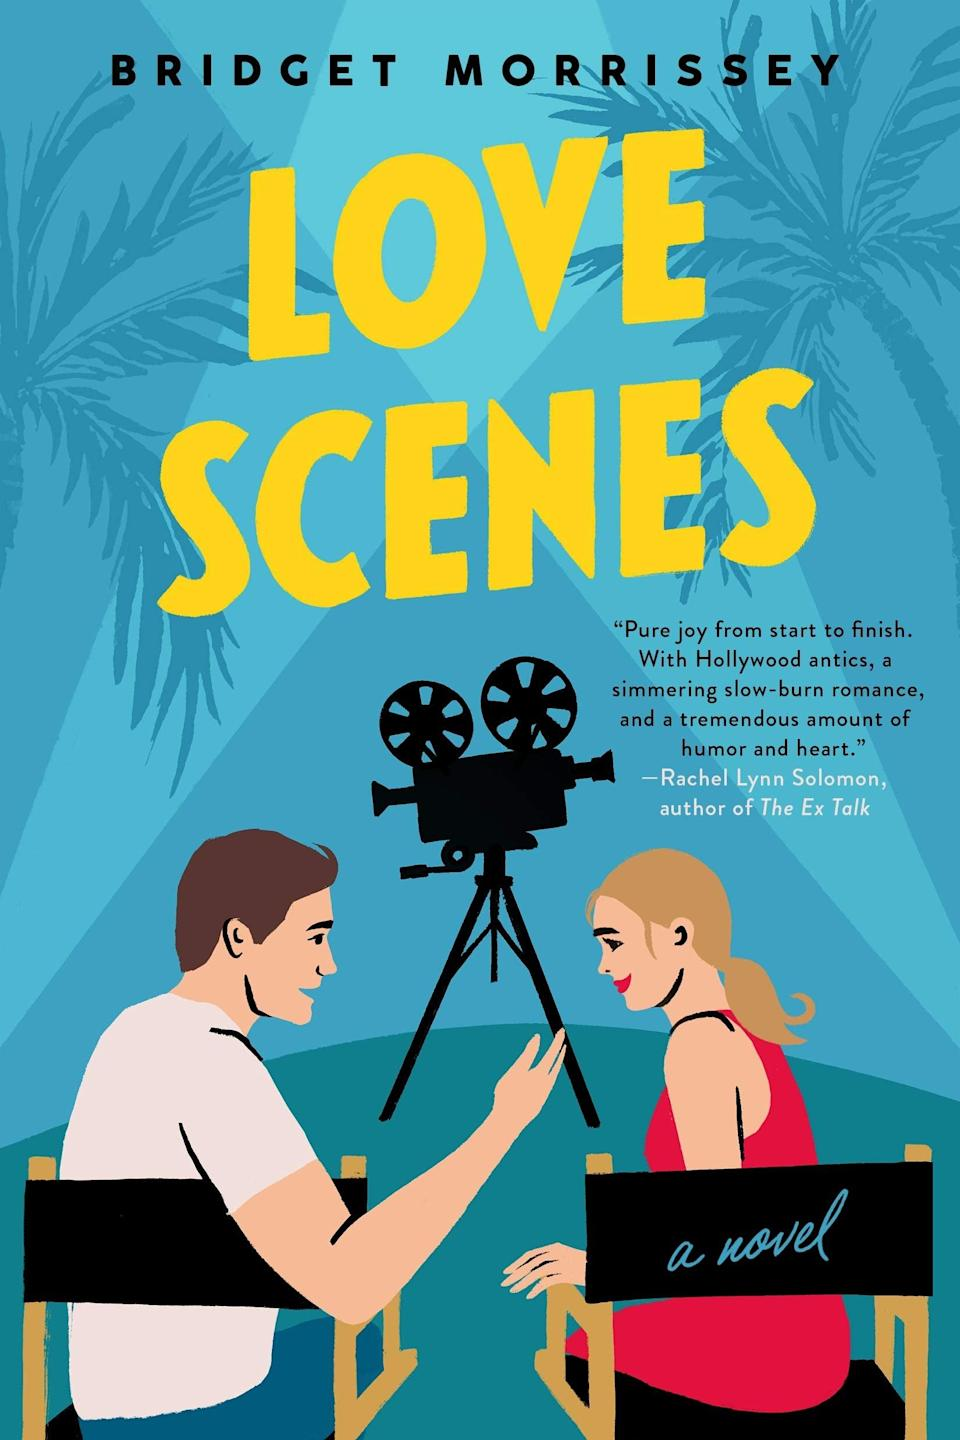 <p>After losing her TV gig, actress Sloane Ford agrees to step in as a producer on her family's World War II epic in <span><strong>Love Scenes</strong></span> by Bridget Morrissey. What her family doesn't tell her is the movie stars her former roguish co-star Joseph Donovan, who Sloane had hoped to never see again. </p> <p><em>Out June 22</em></p>